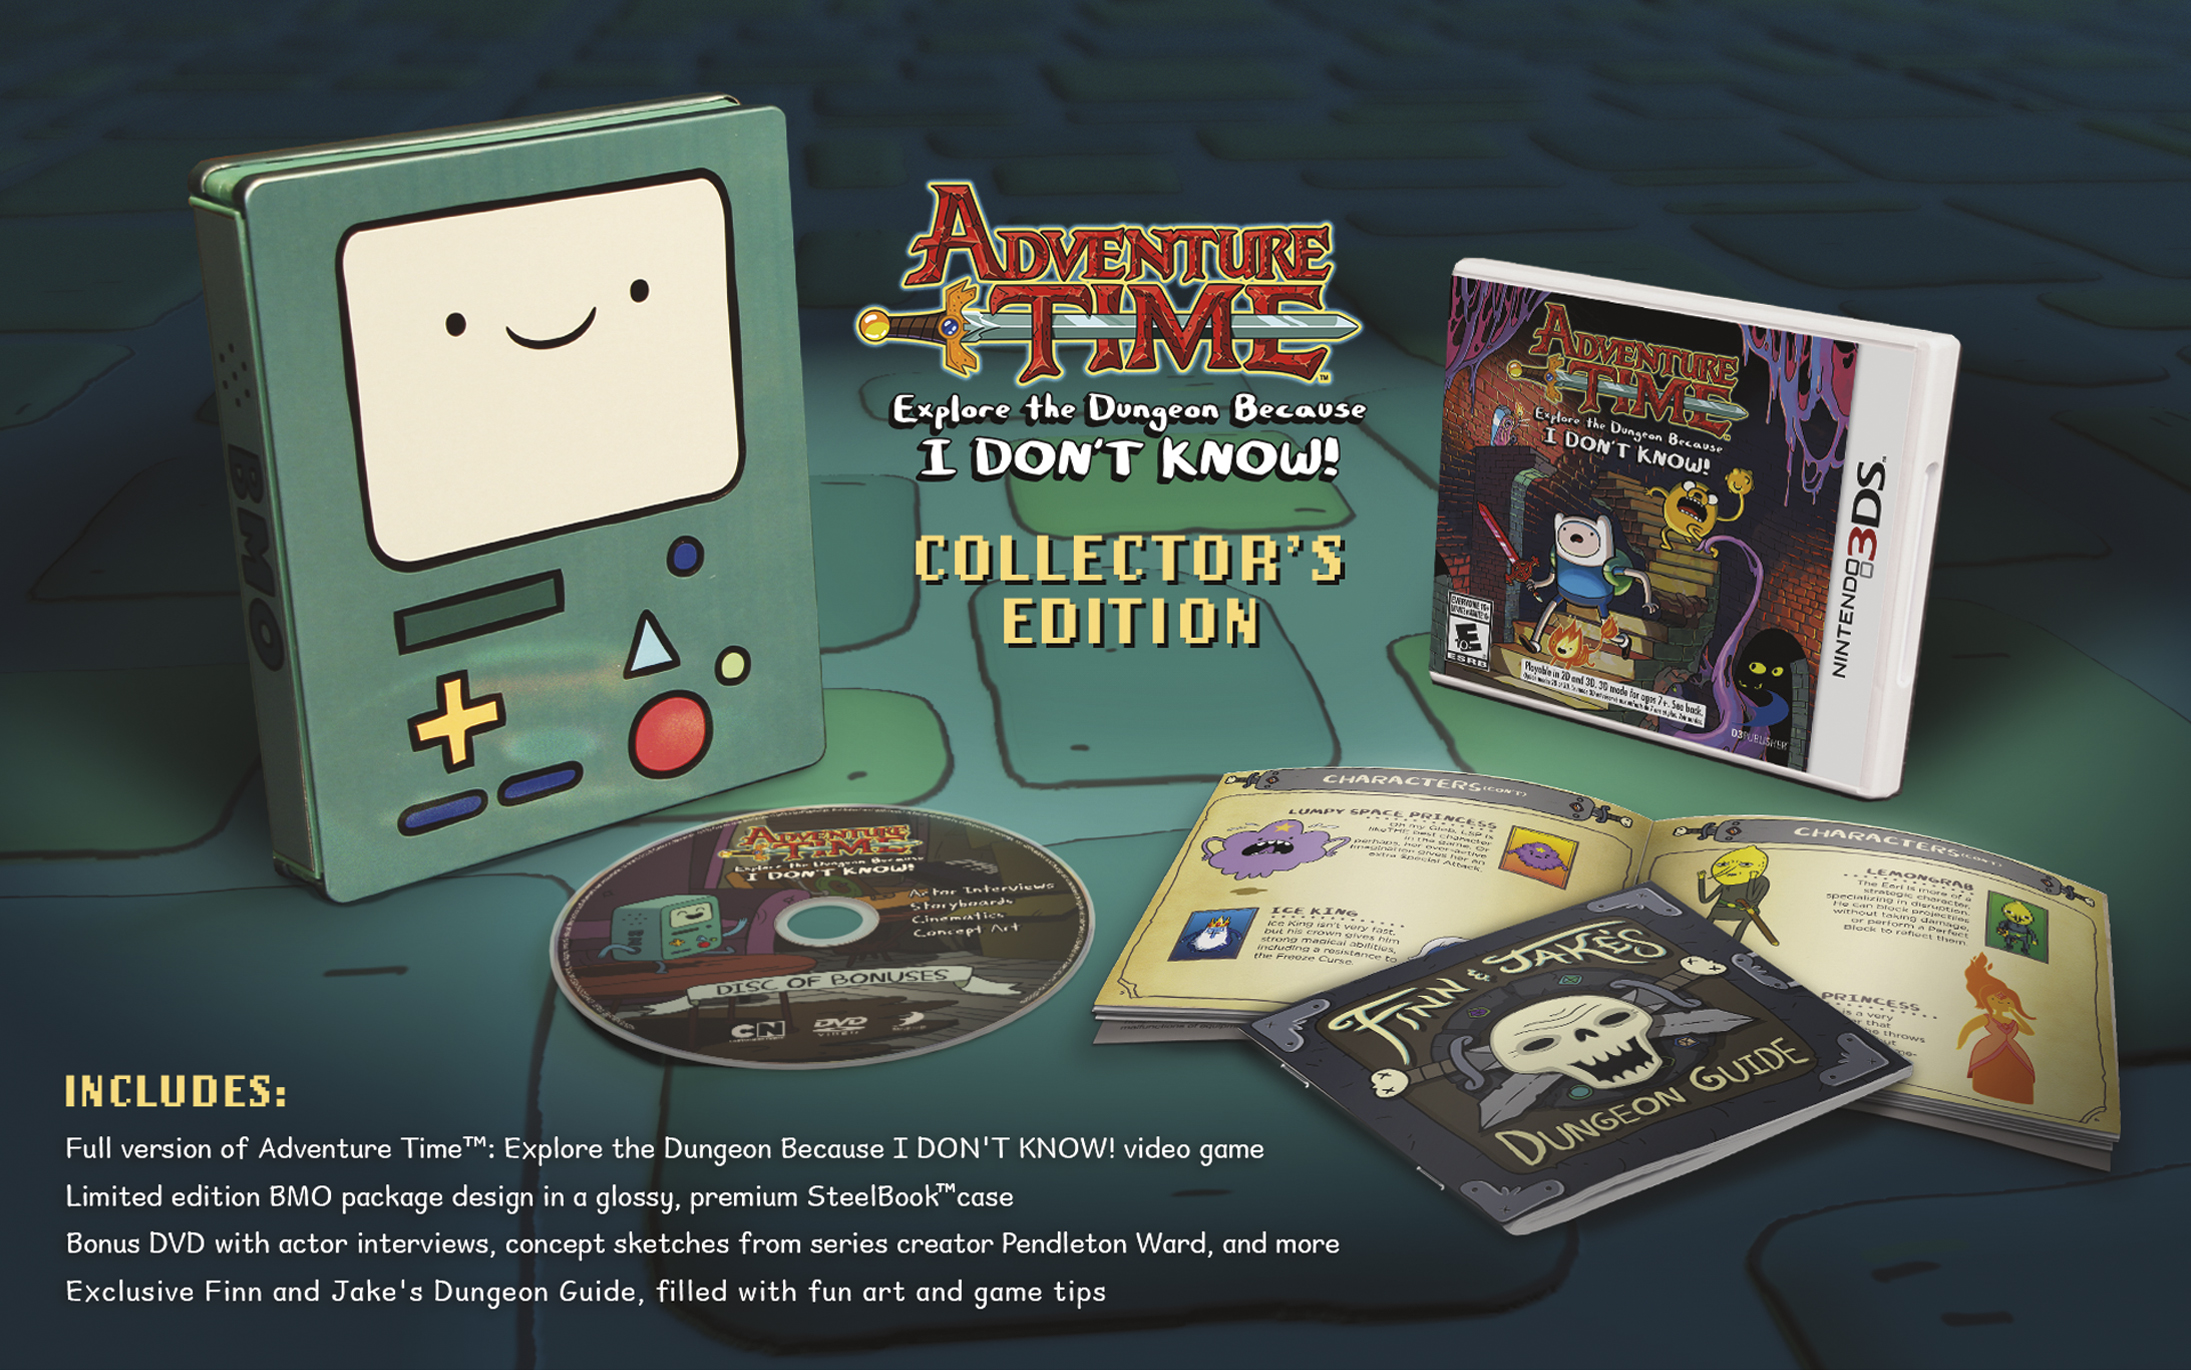 adv2_adventure_time_dungeon_collectors_edition